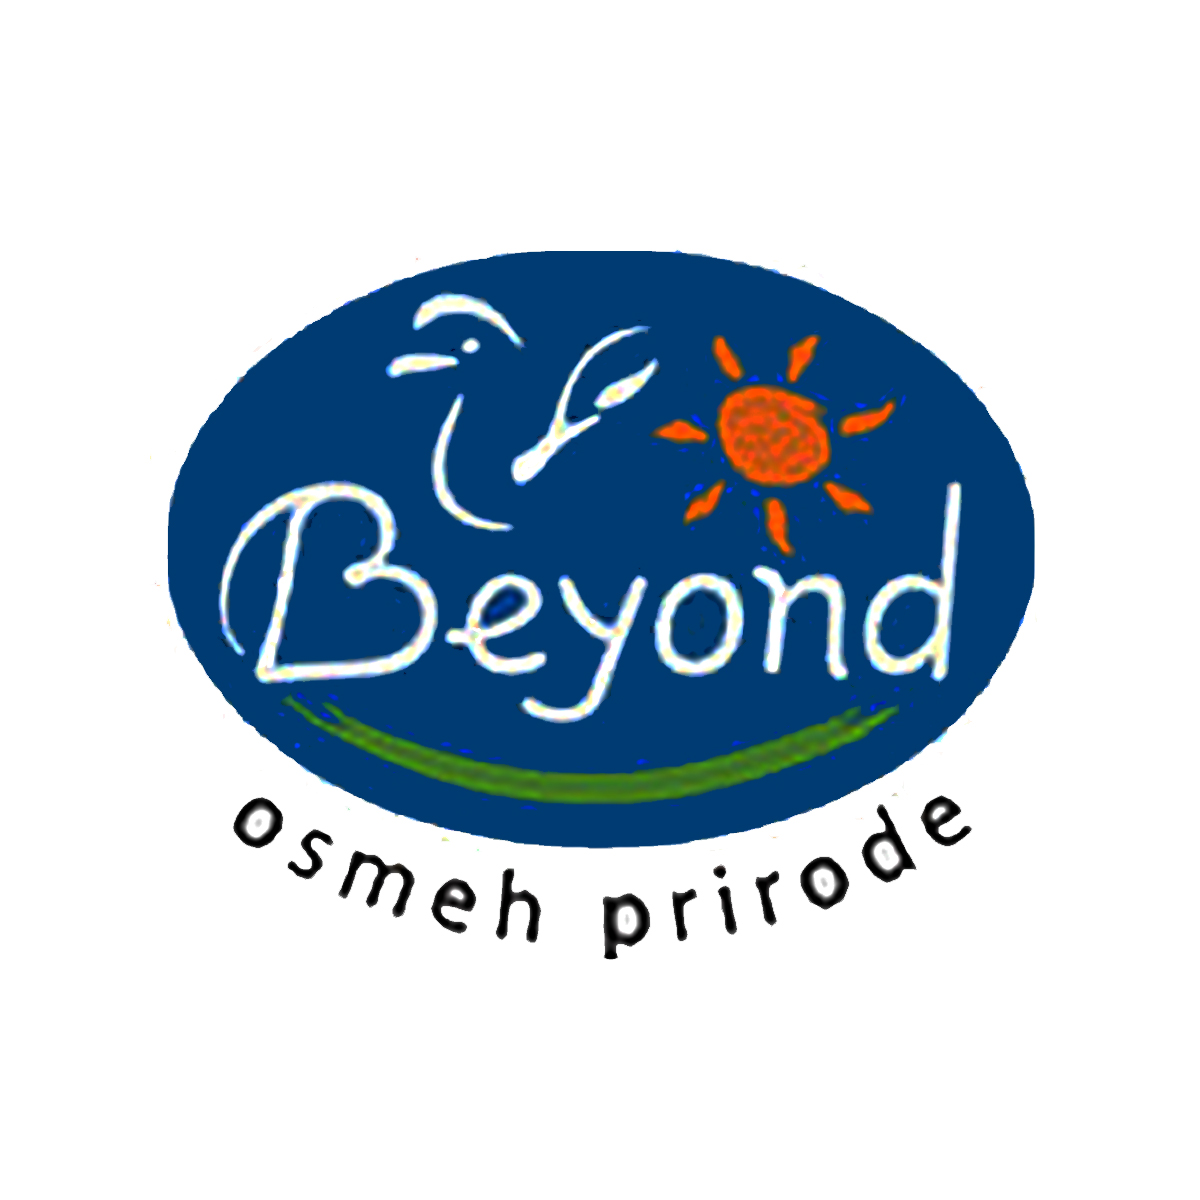 Beyondd